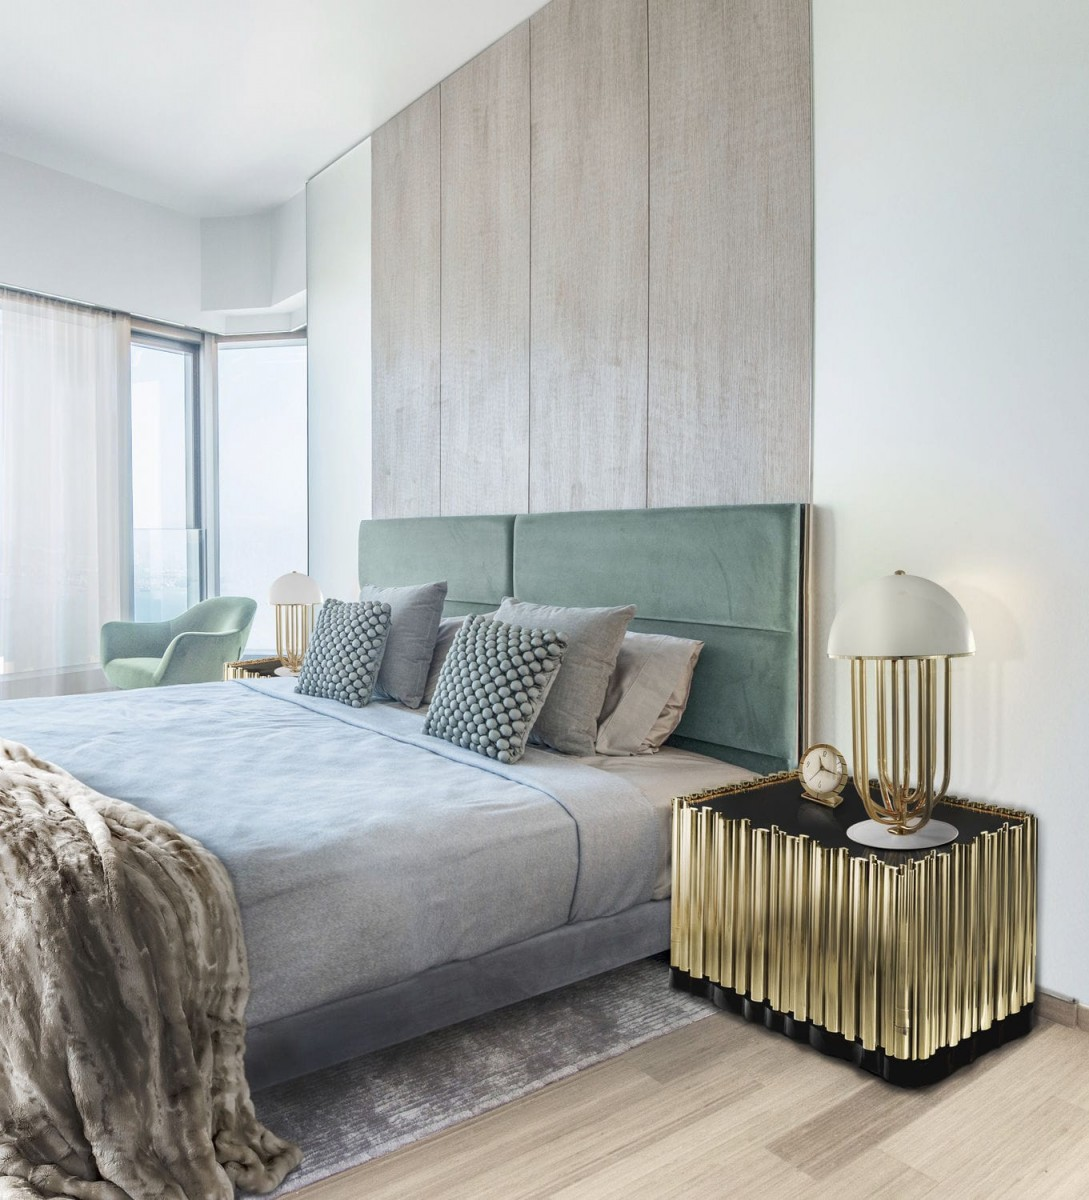 Trends For 2016 10 Bedroom Decorating Ideas For Spring